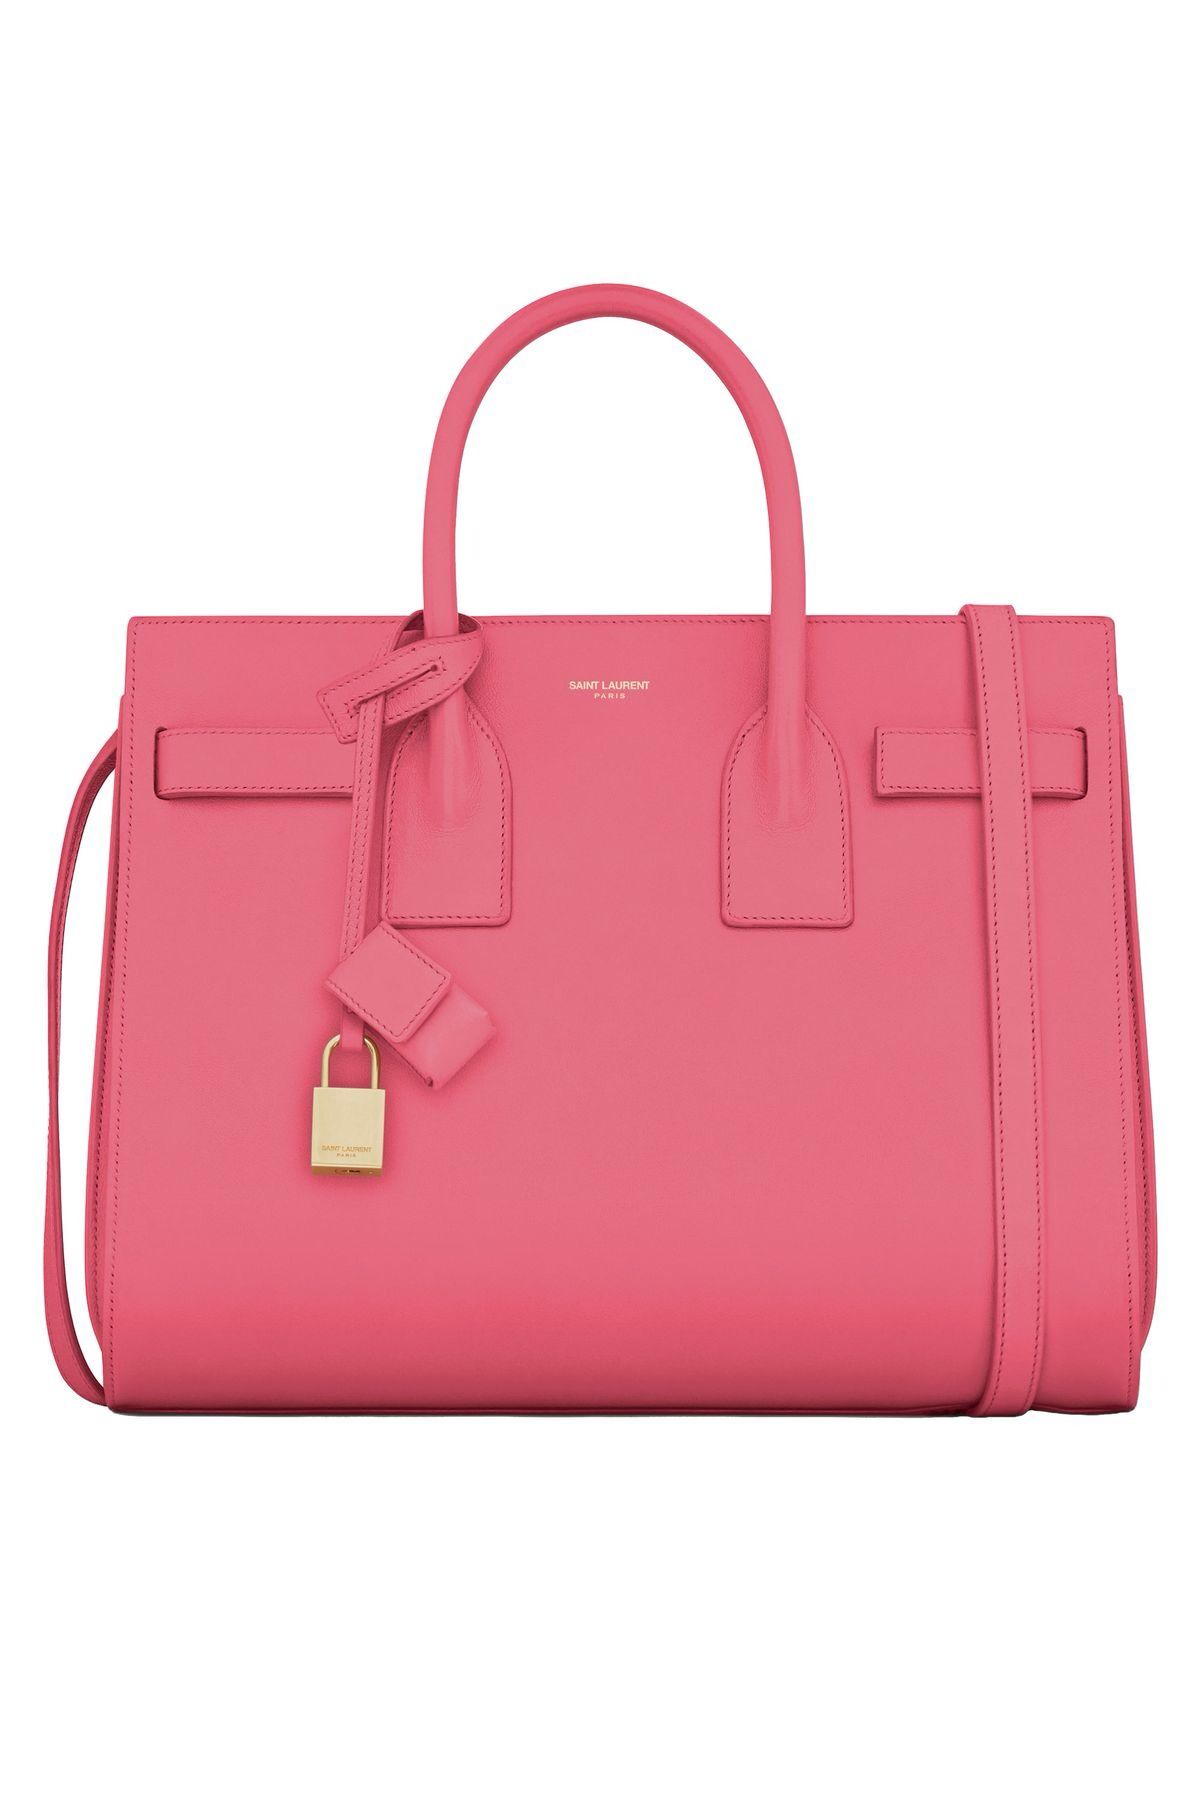 SAINT LAURENT SPRING 2014 Bag is pretty awesome! One of my new faves for handbags!